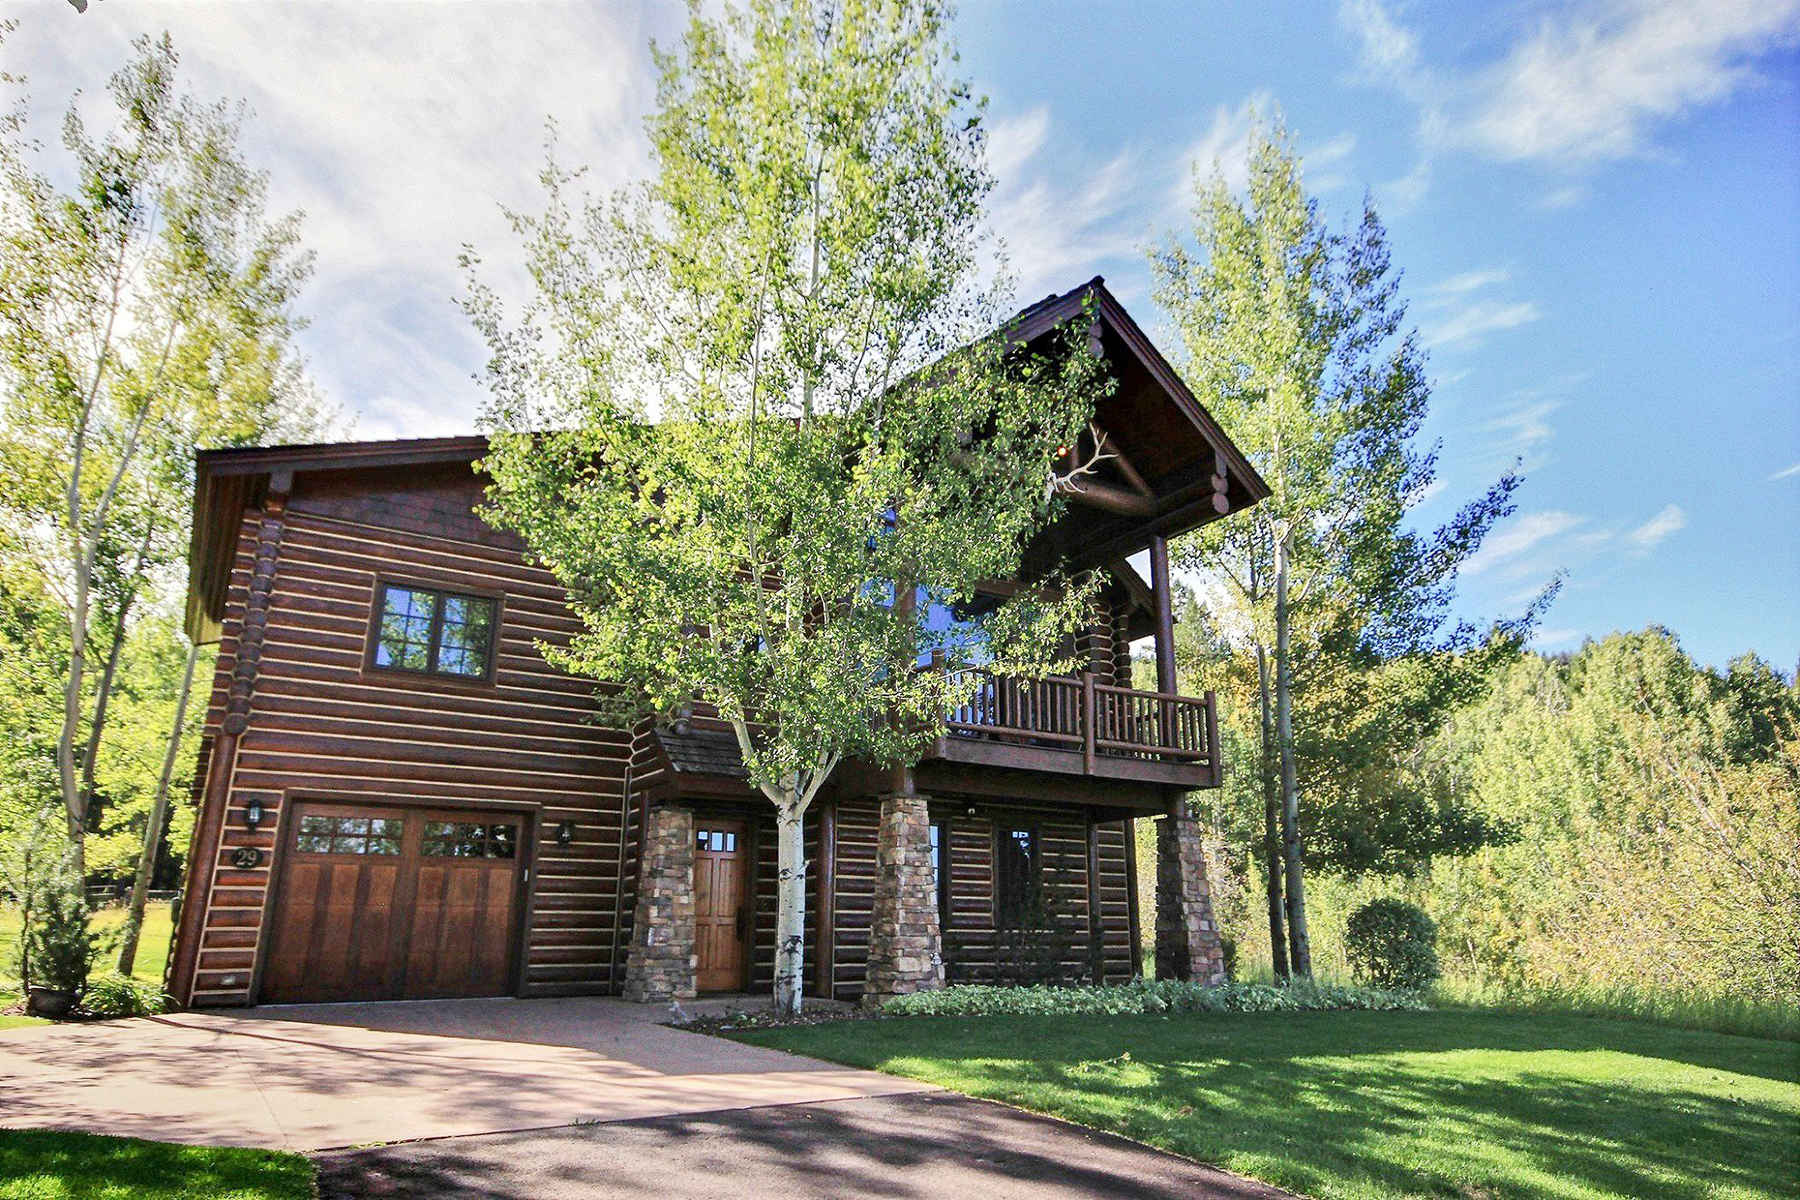 Single Family Homes for Active at Luxurious Turn - Key Forest Cabin in Teton Springs 29 Bannock Cir Victor, Idaho 83455 United States